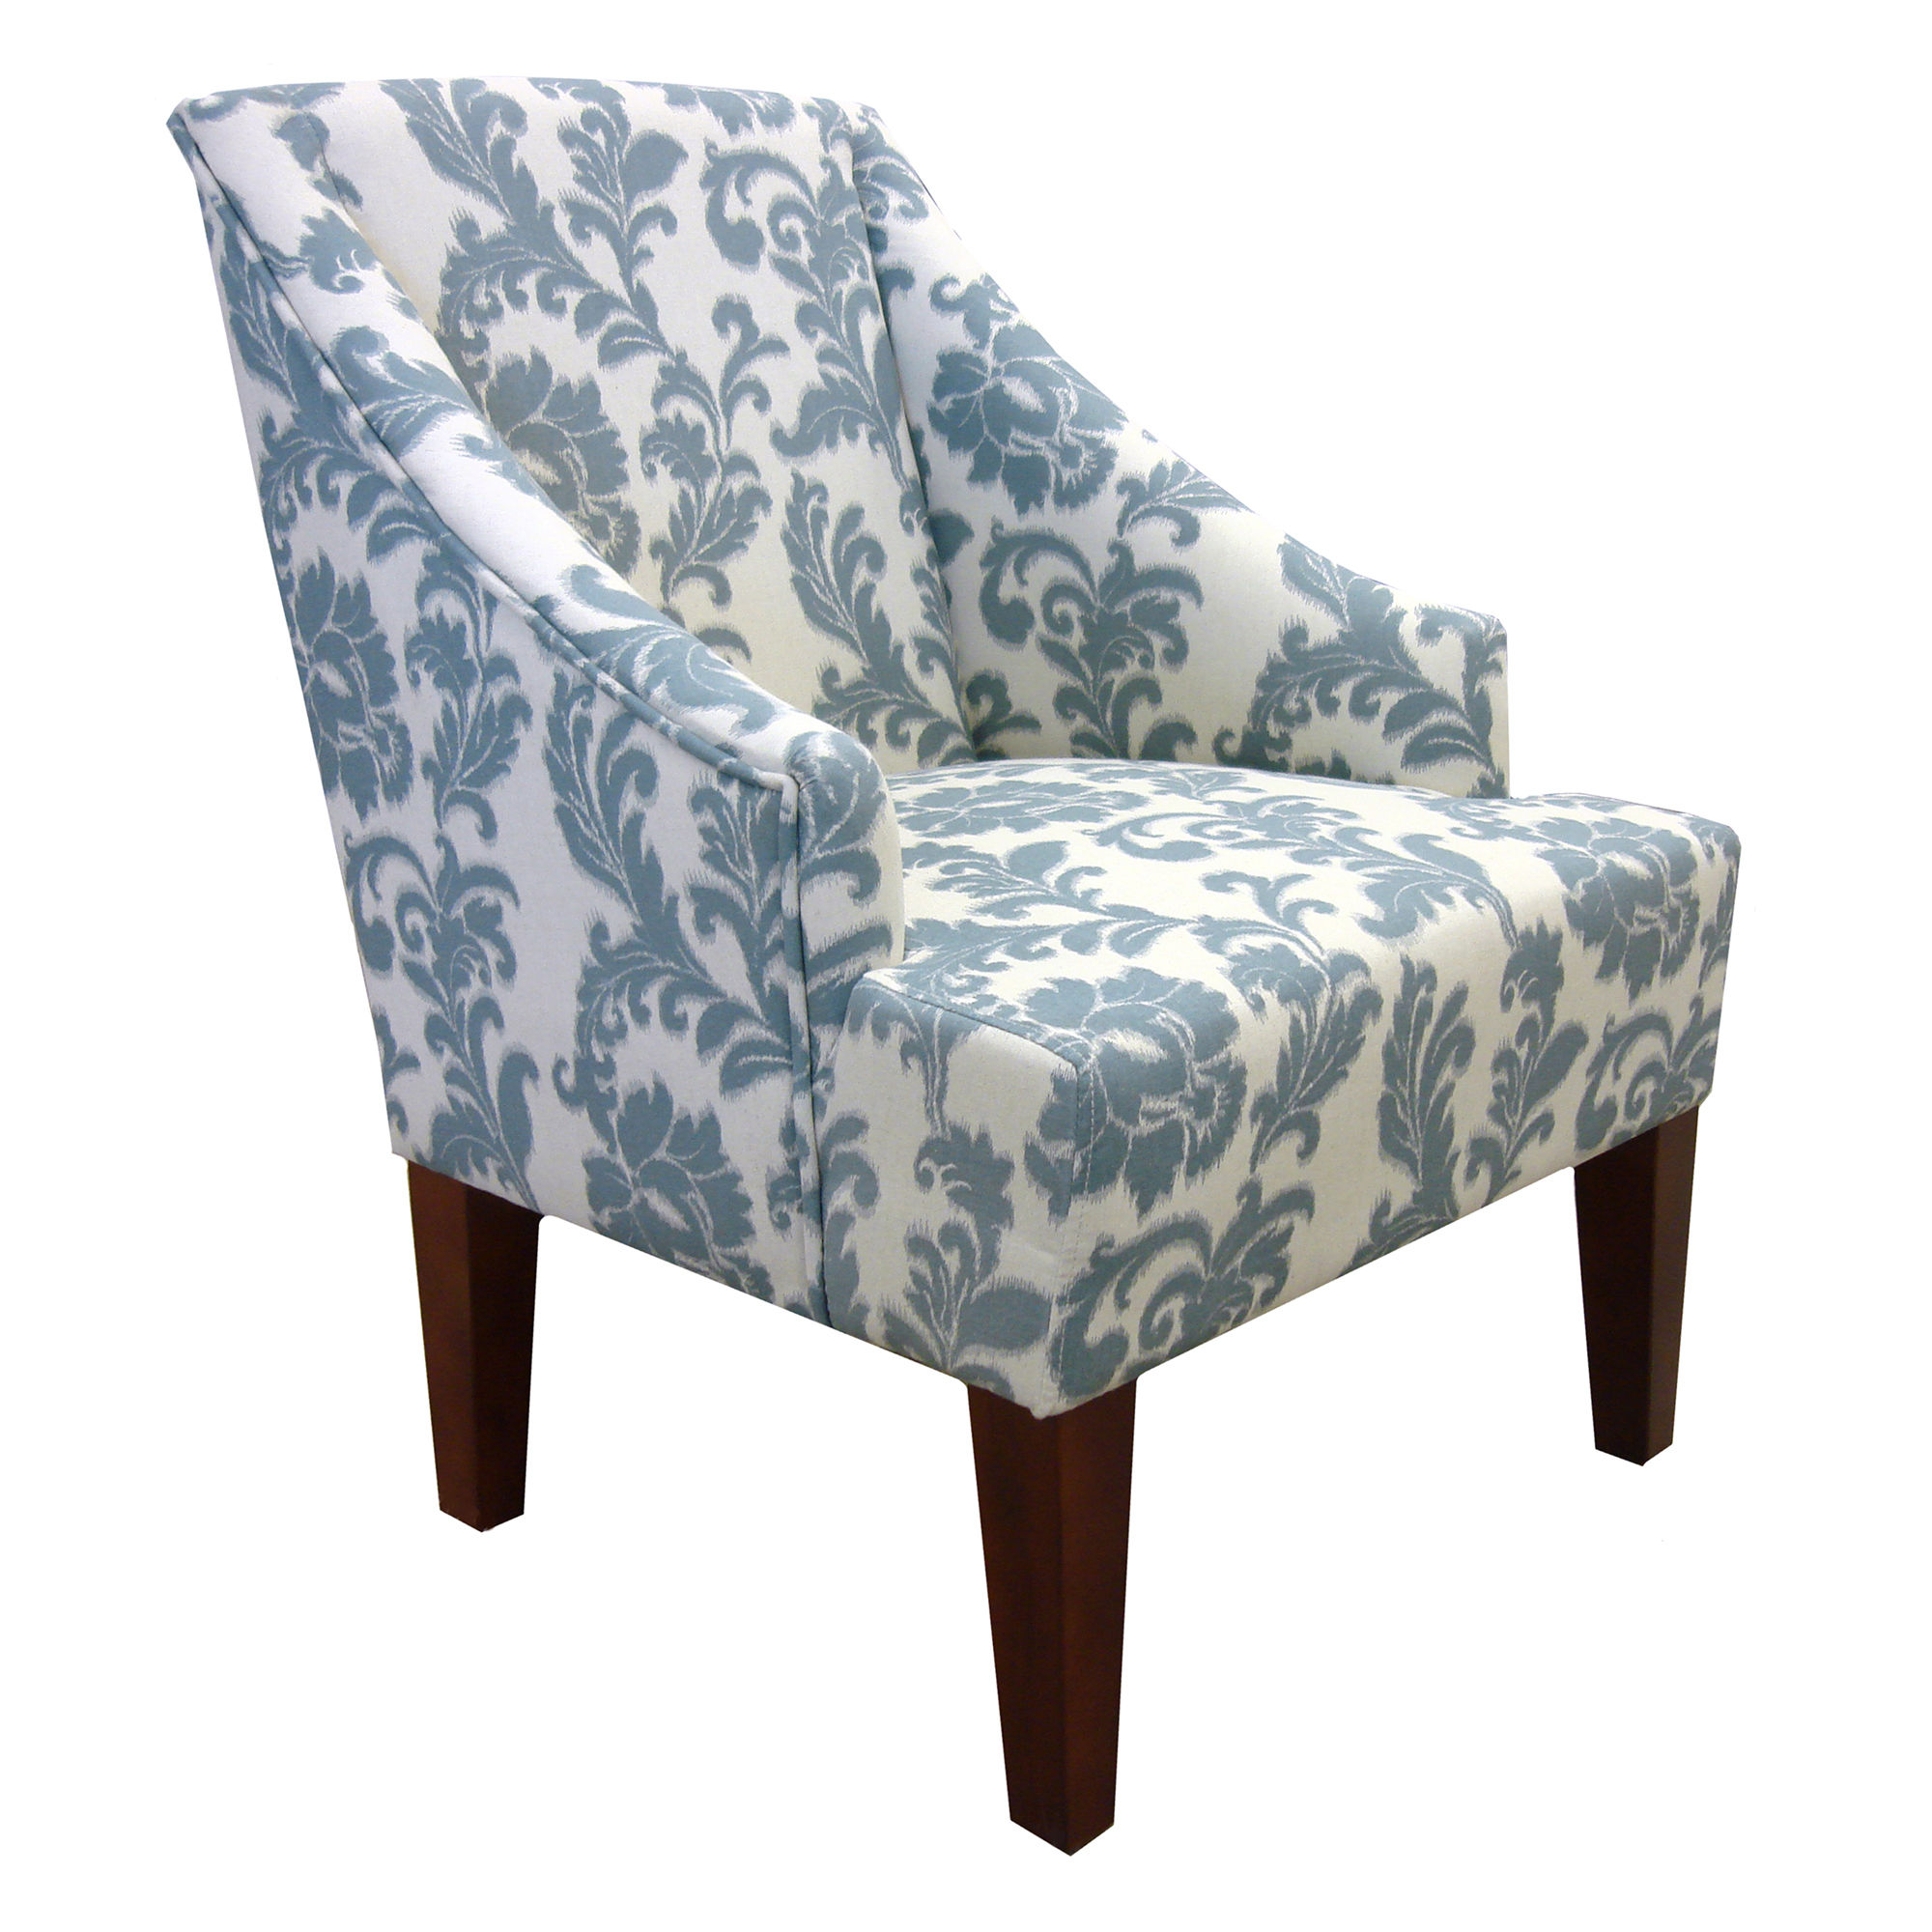 Armen Living Ikat Slate Accent Chair   The Classy Home